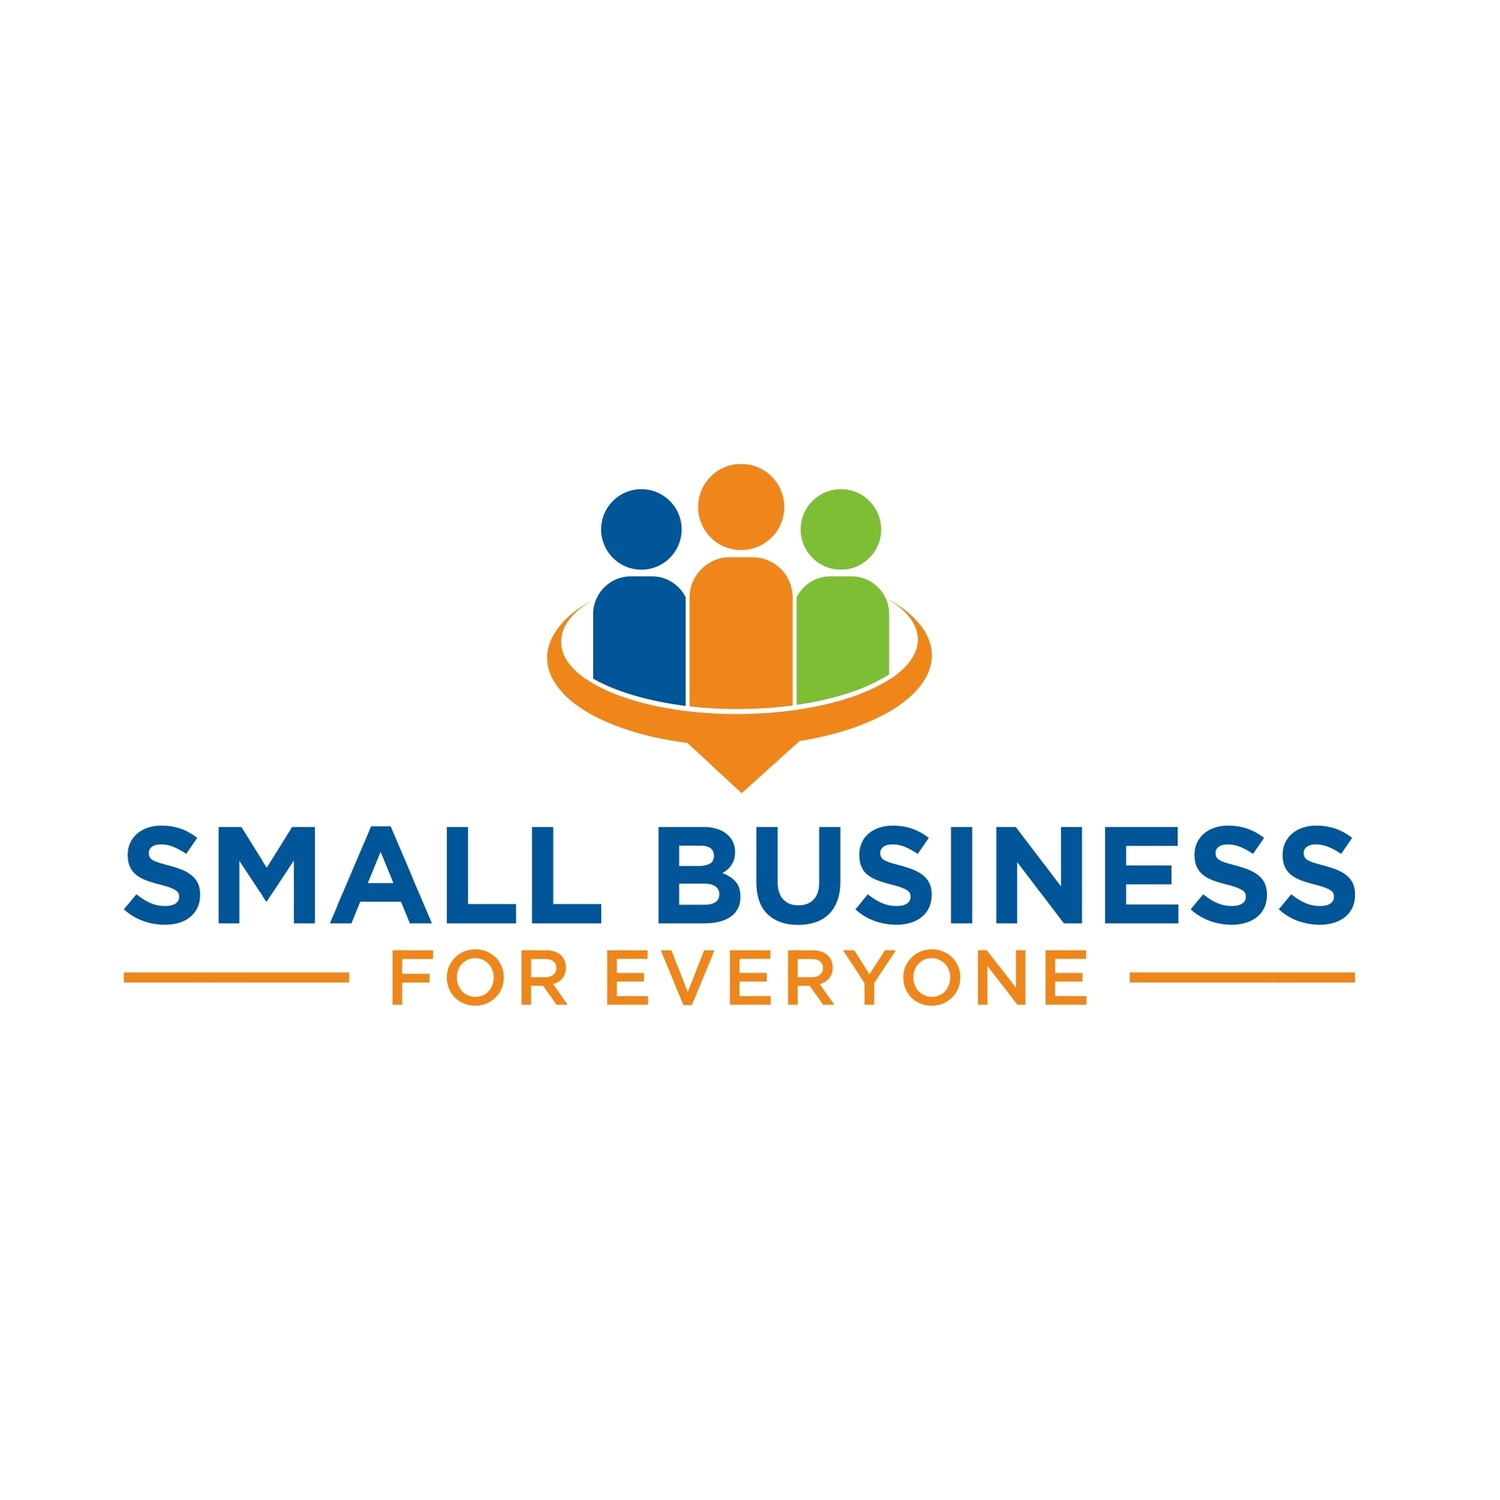 Small Business for Everyone